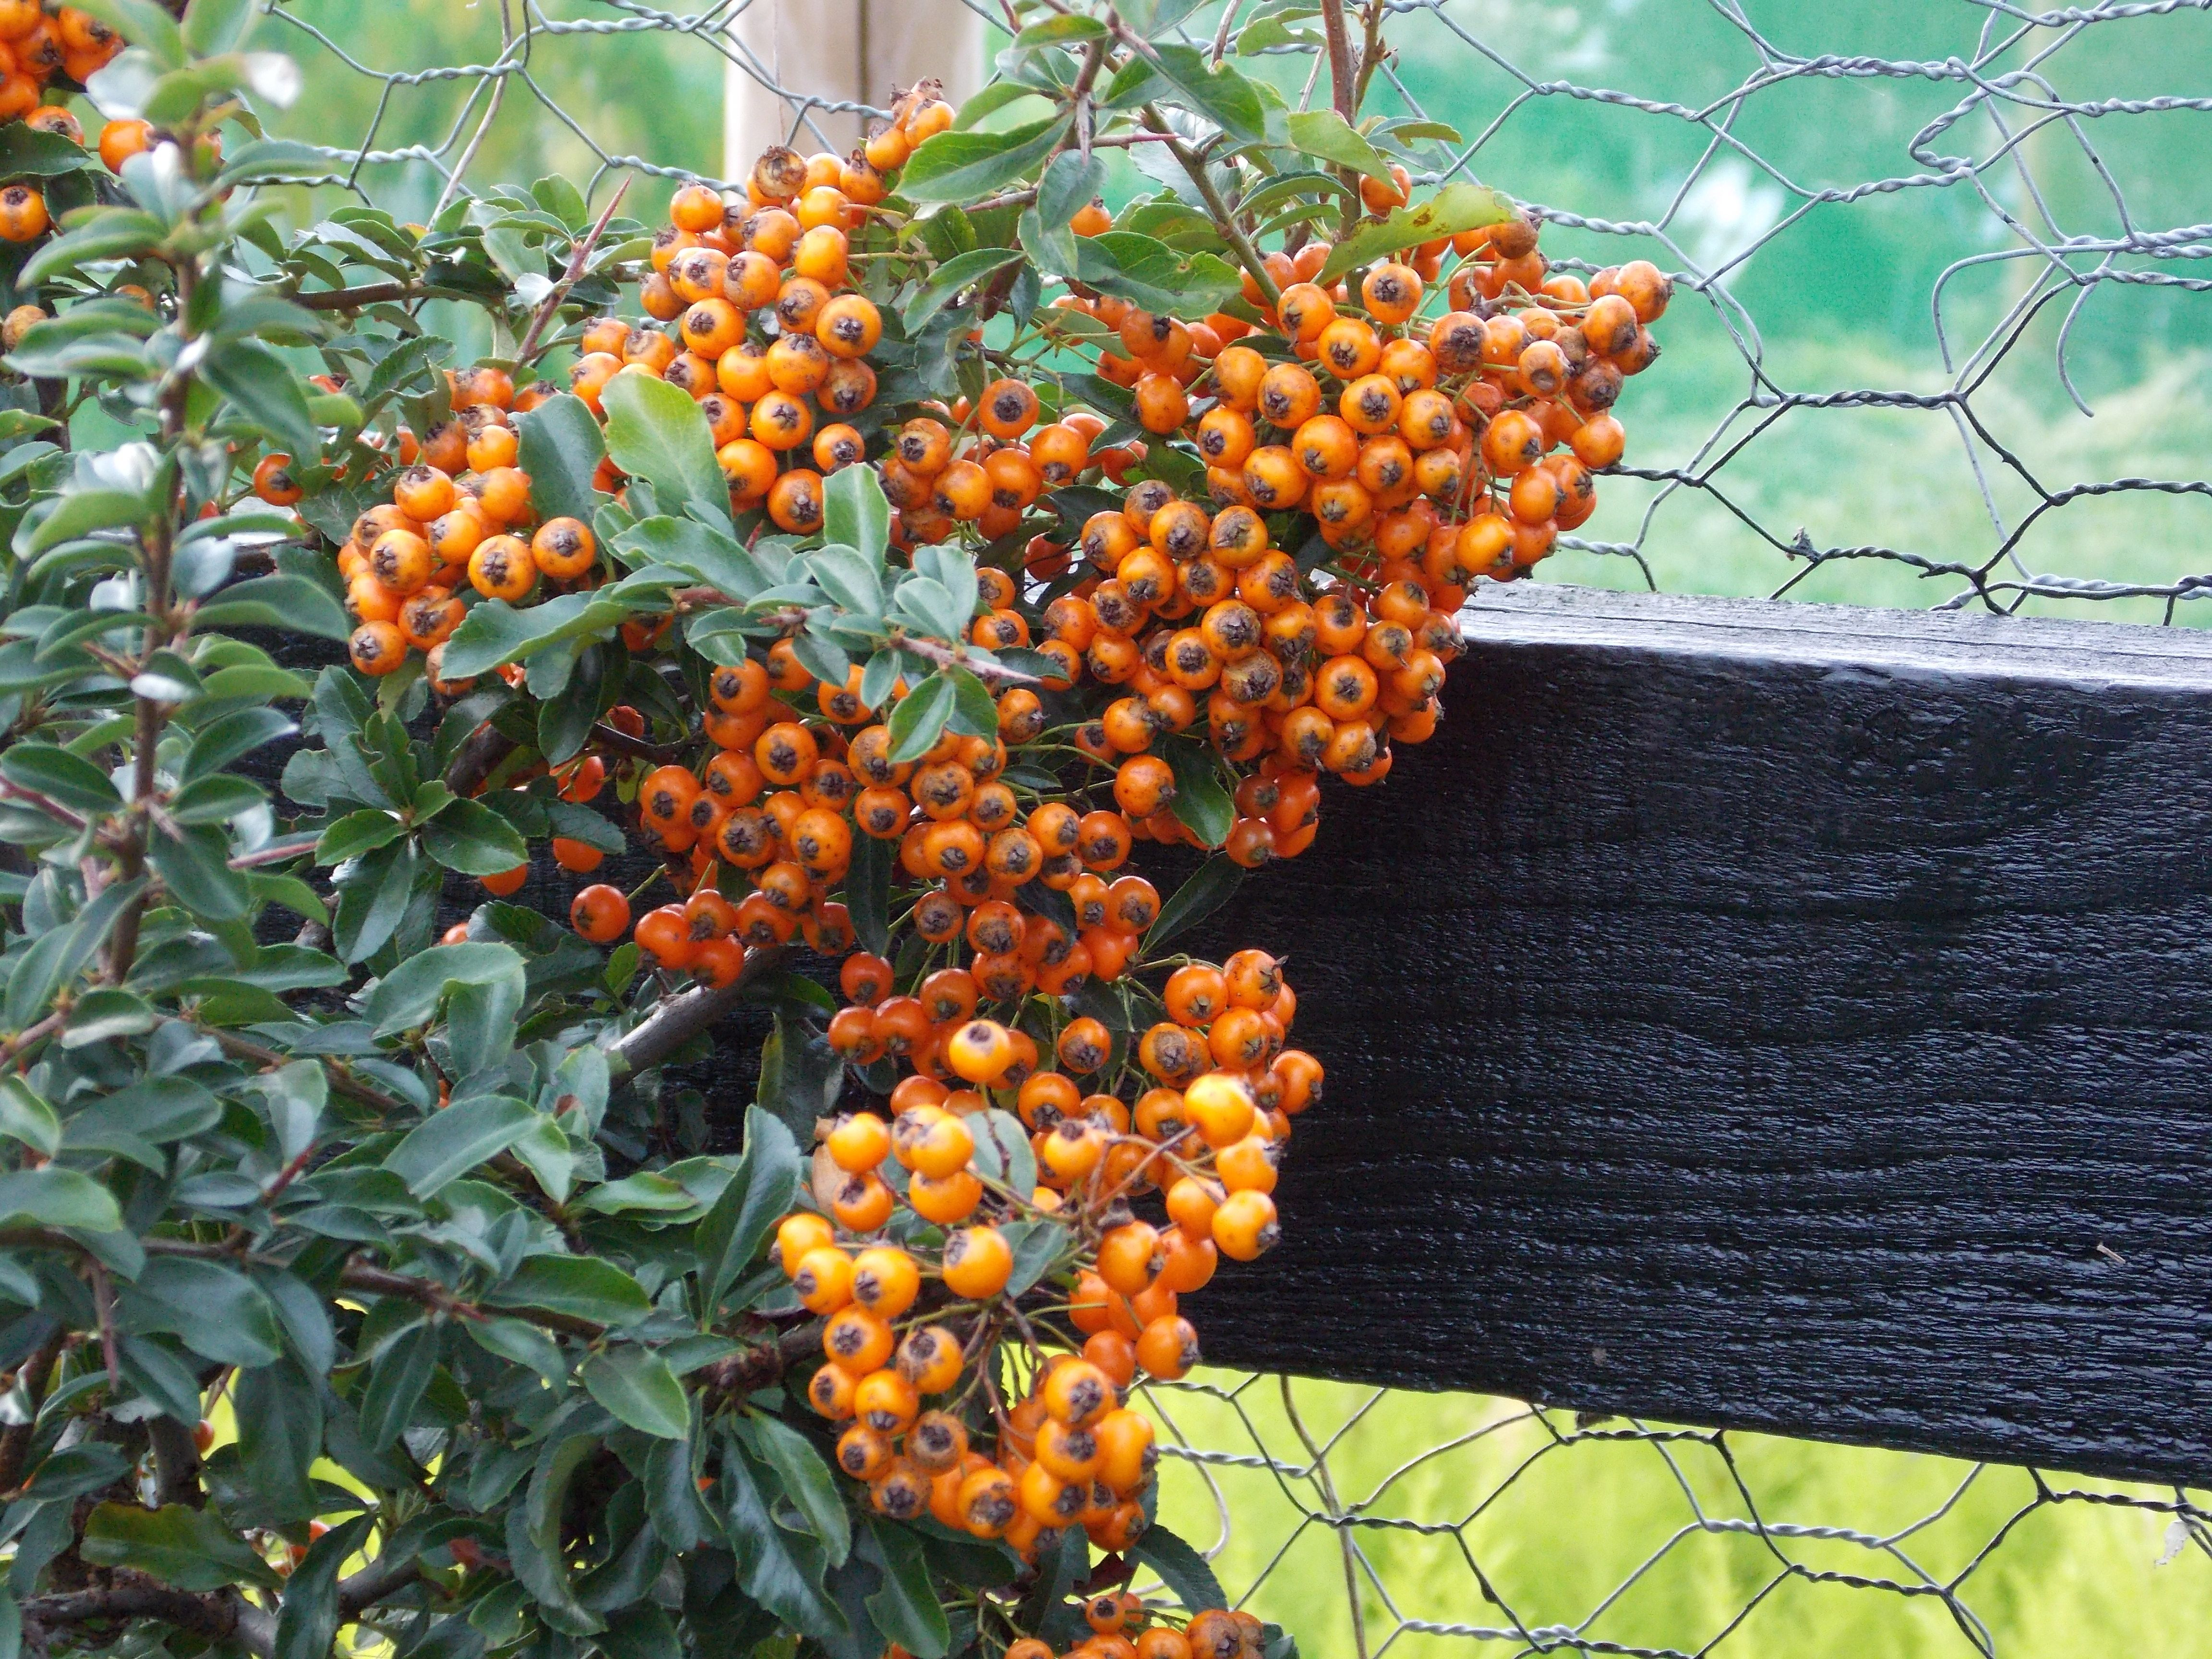 Pyracantha Coccinea Shrub Named Teton Grows Grows To 12 Feet High And 4 Feet Wide With Golden Yellow Berries Plants Shrubs Hedges